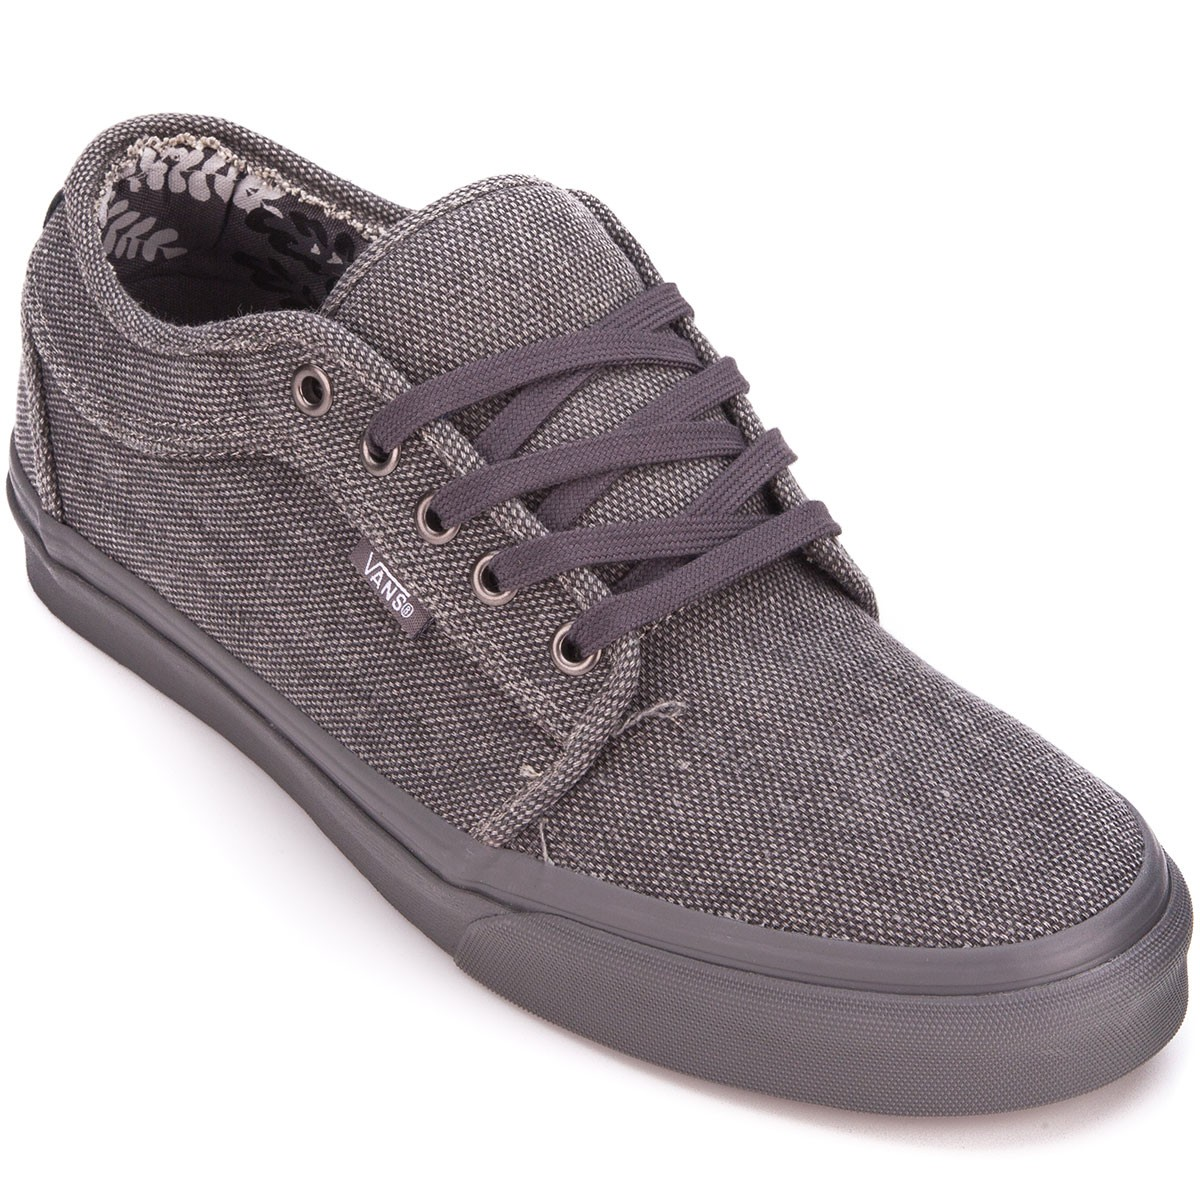 Vans Chukka Low Shoes - Distressed Textile/Smokeout - 6.0